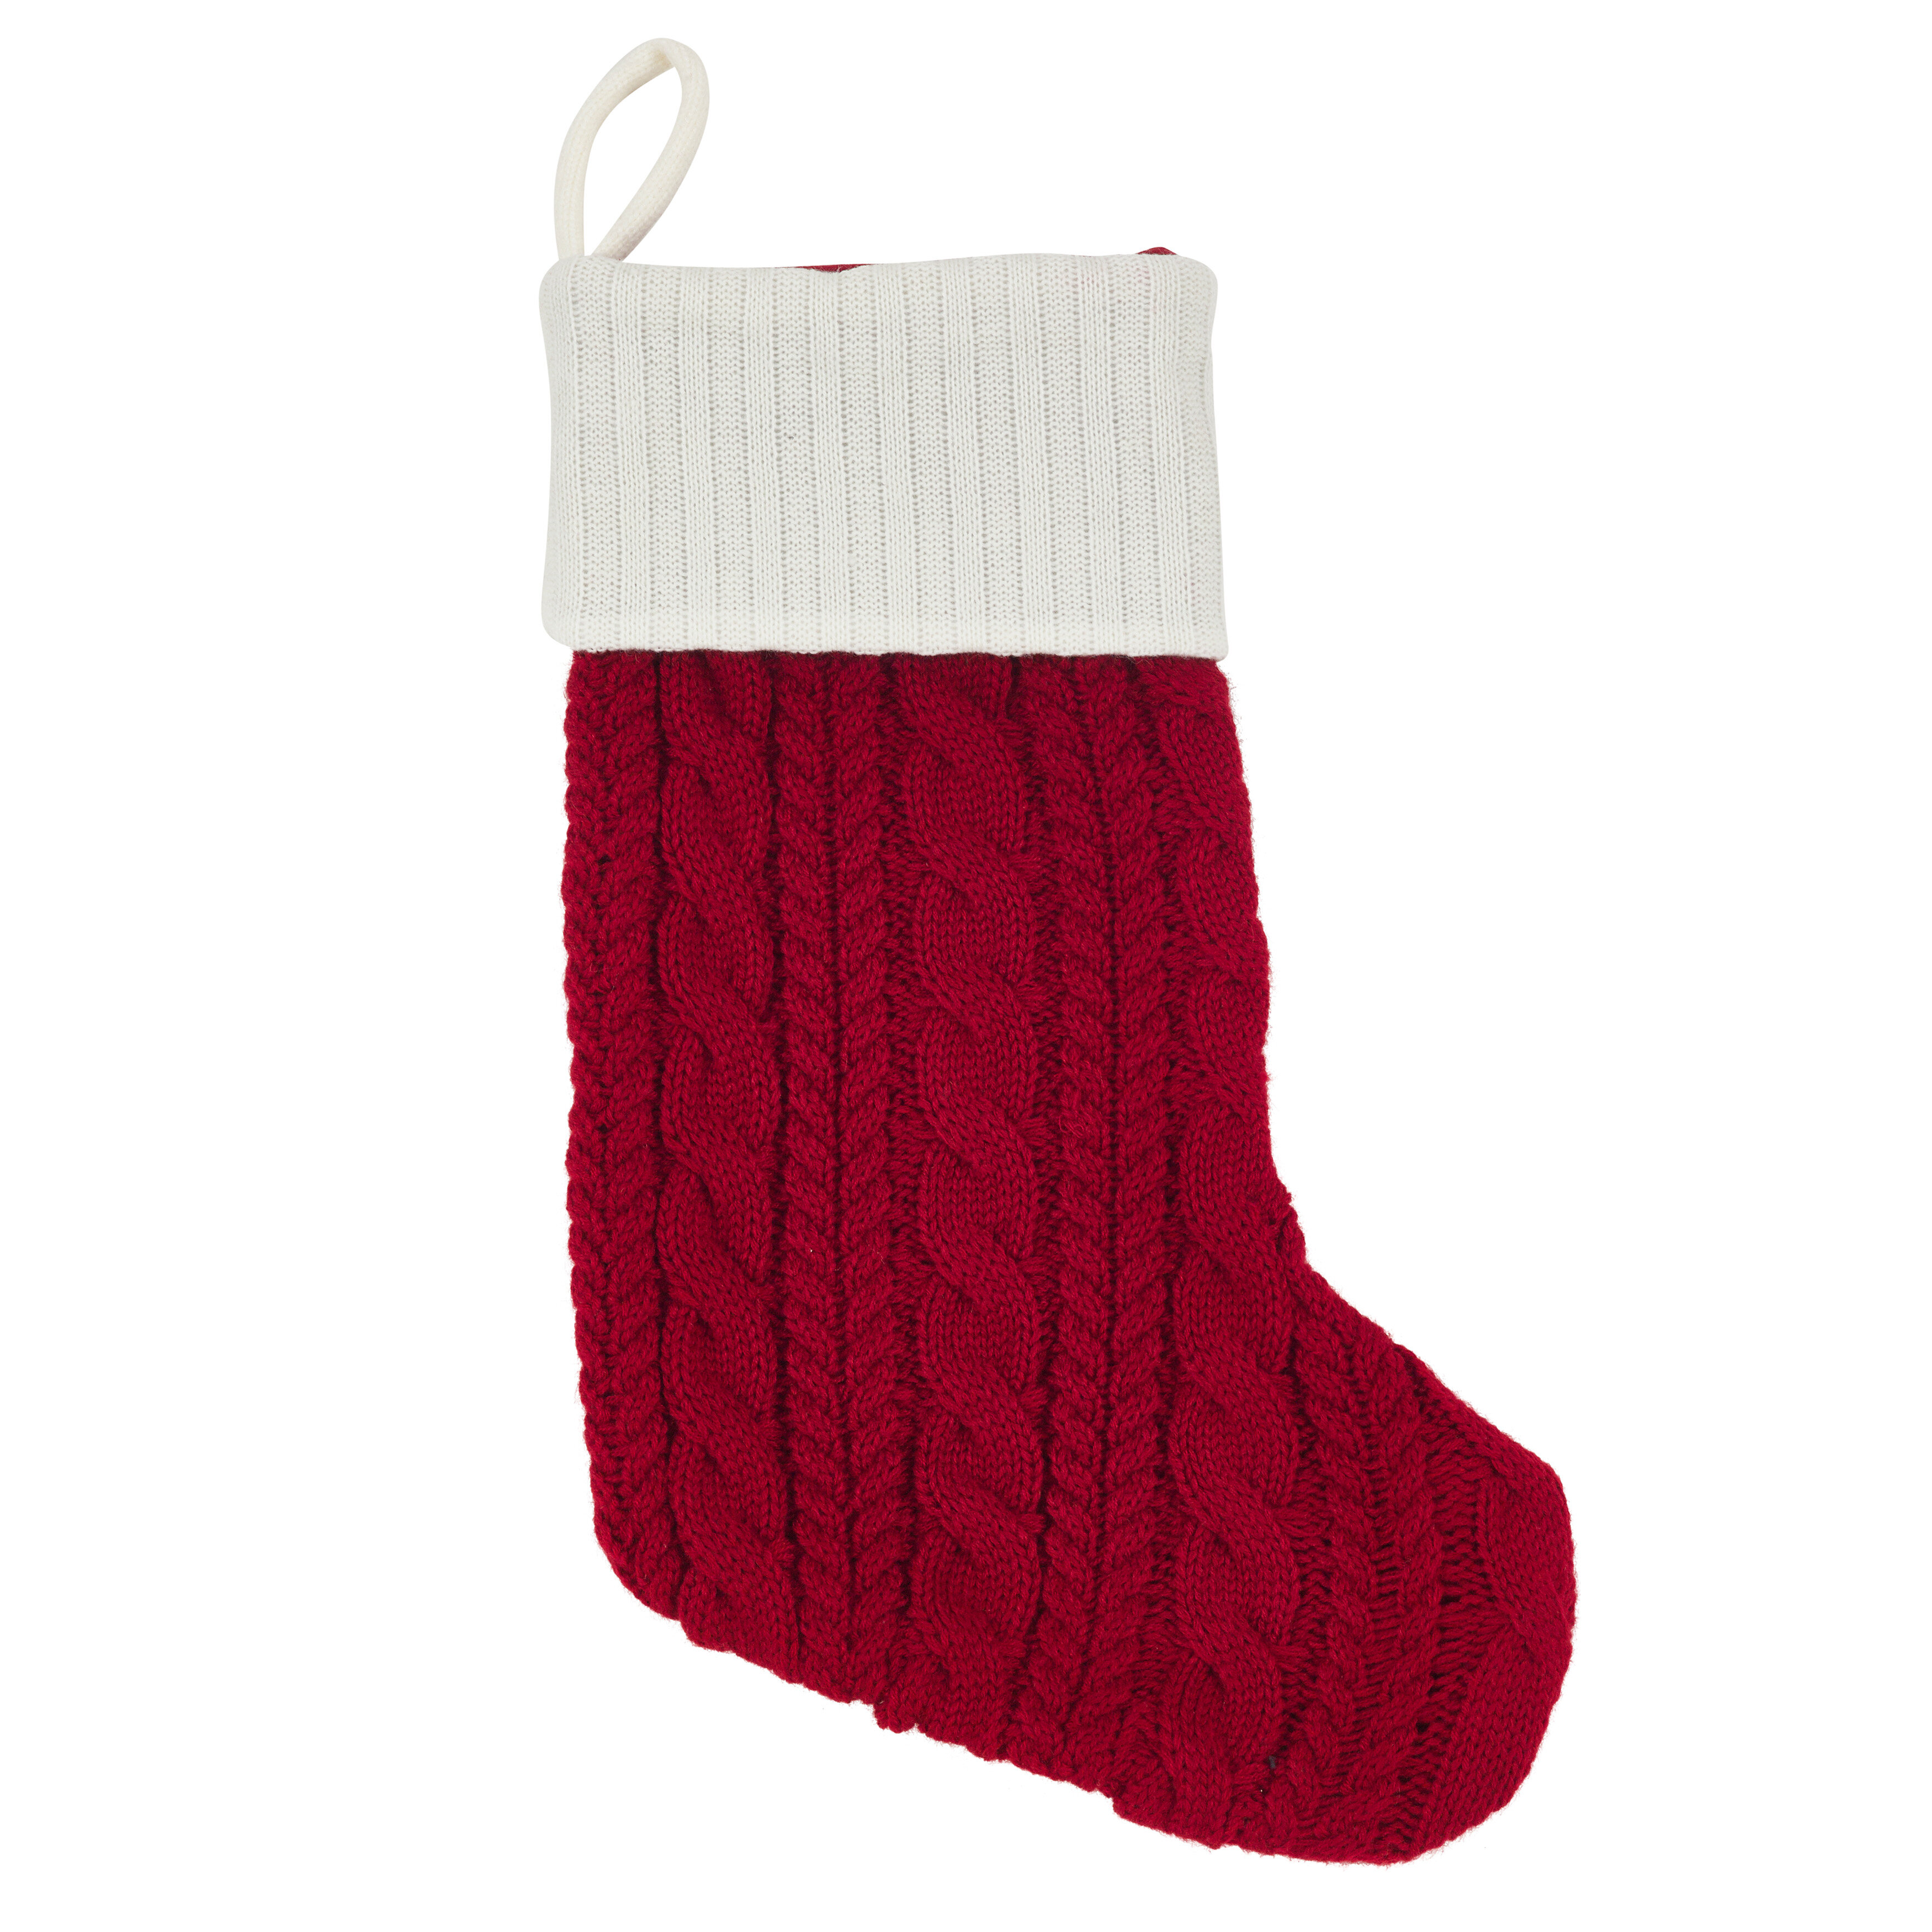 Cable Knit Christmas Stockings.Jelestrompe Cable Knit Holiday Christmas Stocking